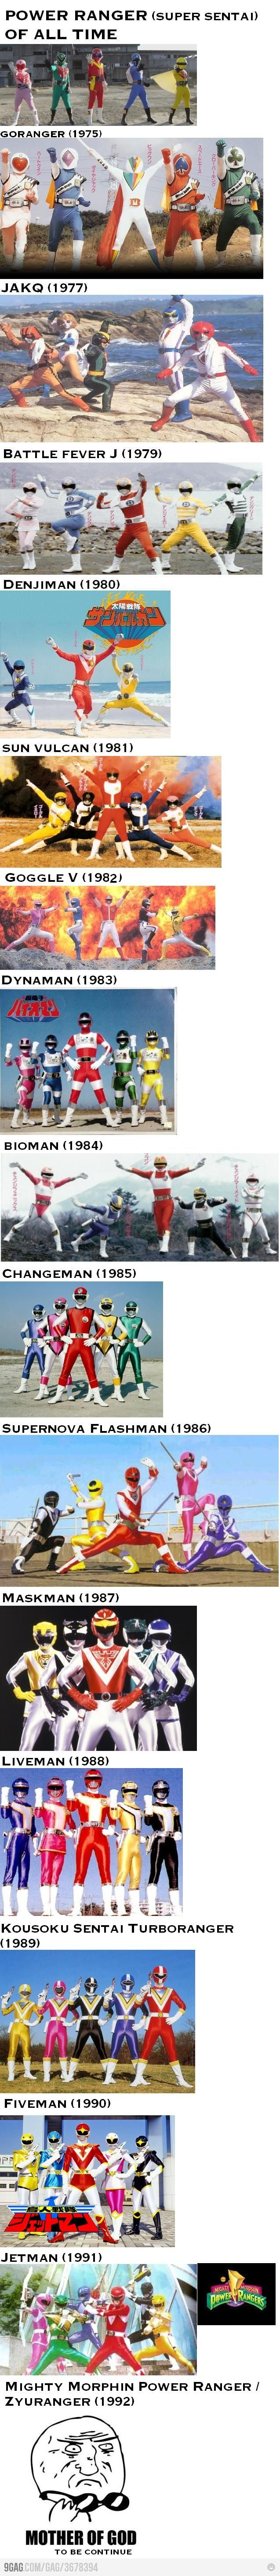 Power Ranger of all time